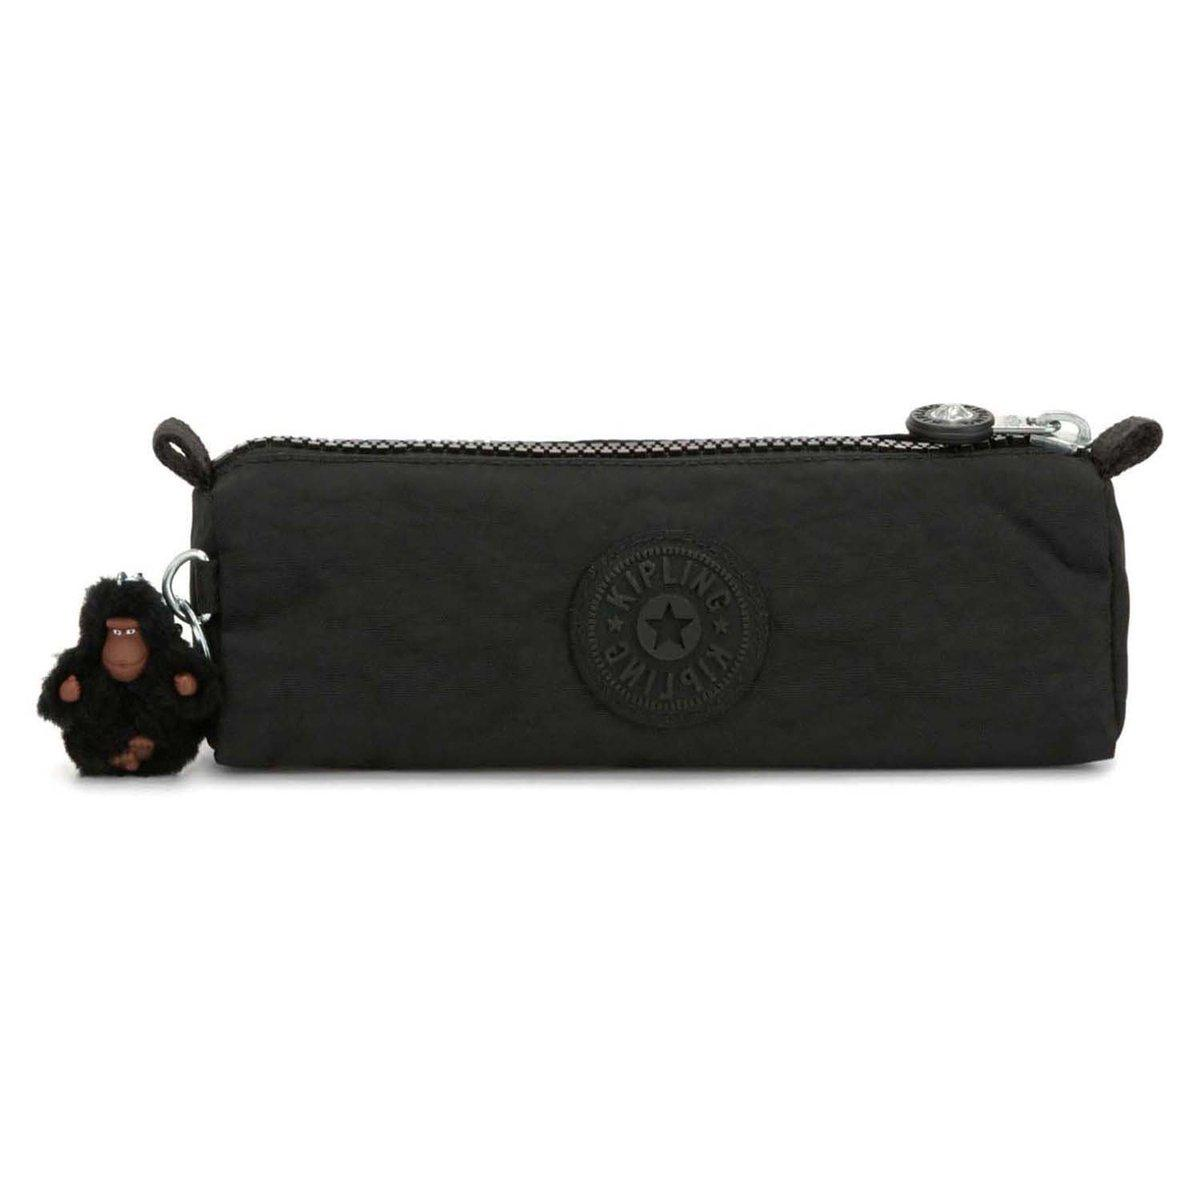 Βαρελάκι Kipling Freedom True Black (01373-J99)